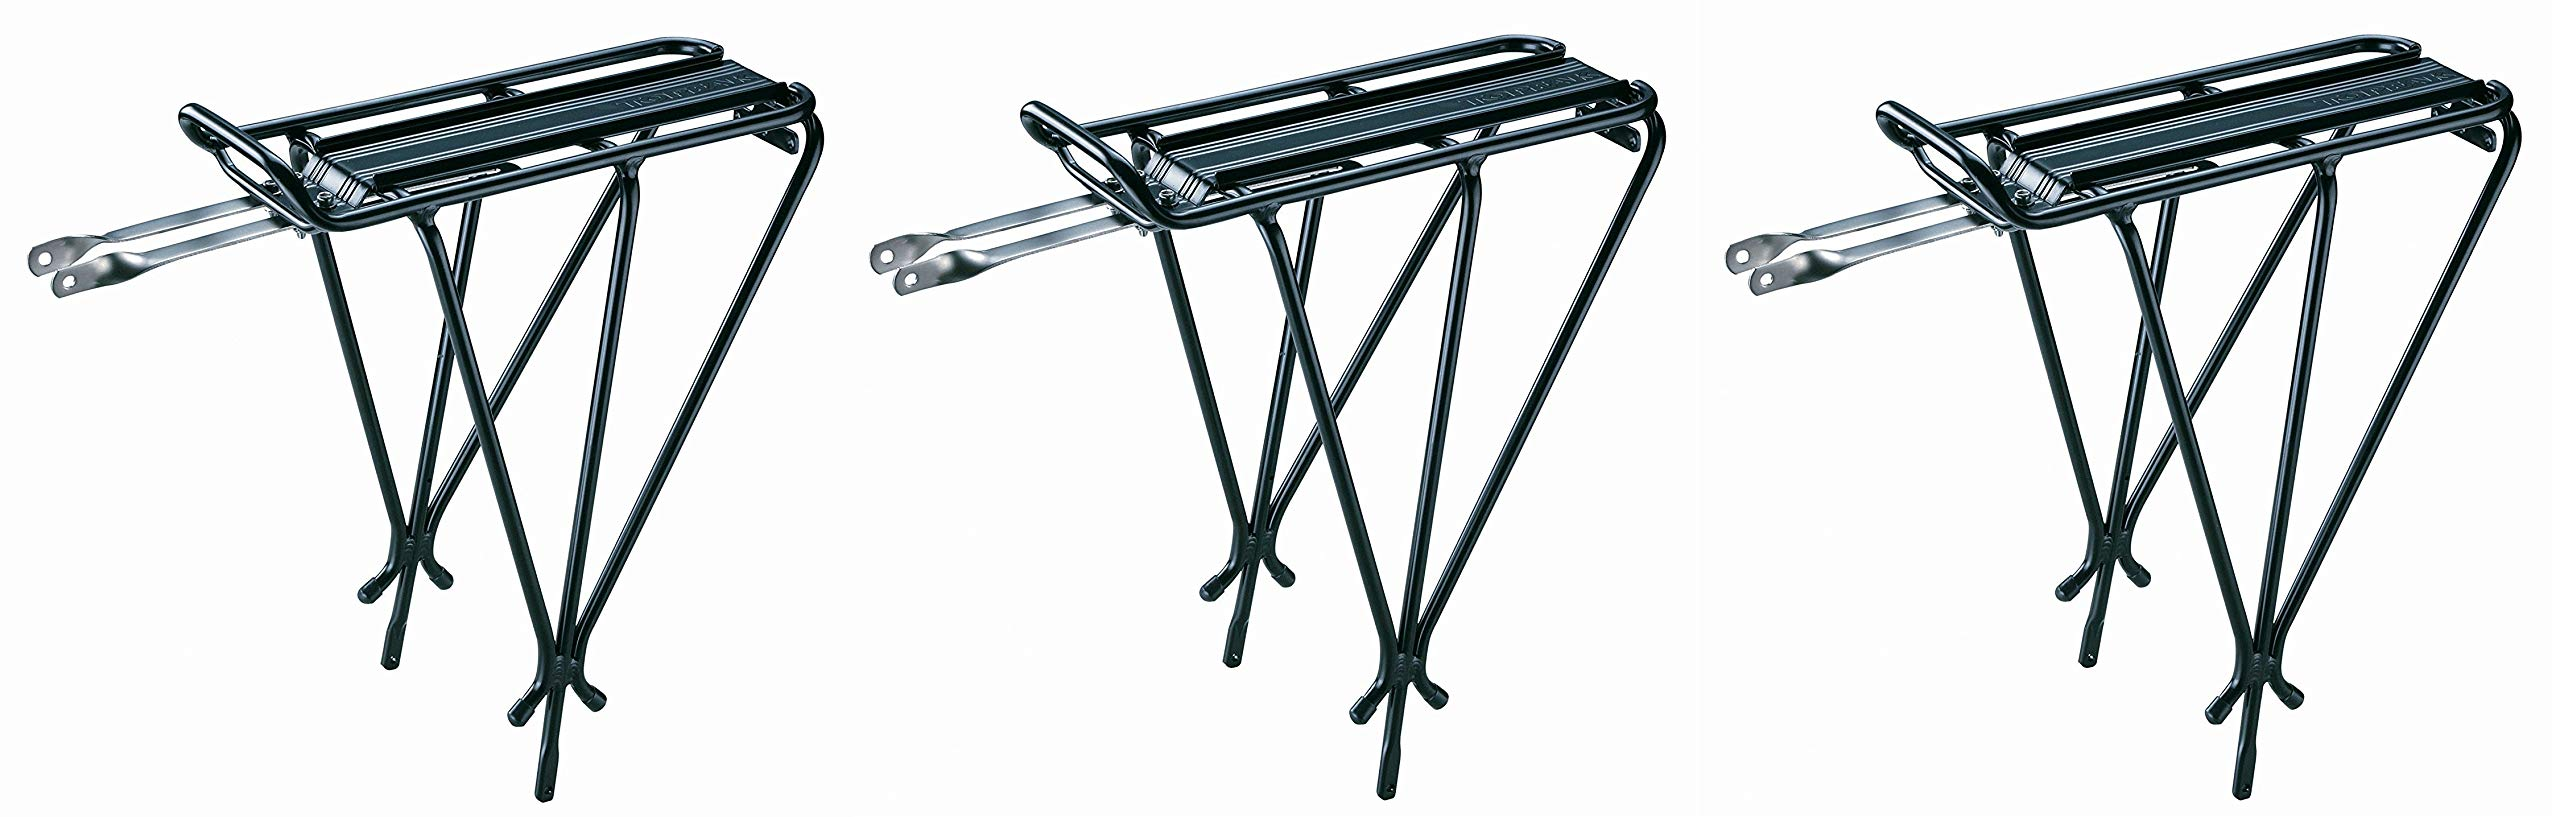 Topeak Explorer Rack Without Spring, Black (Pack of 3)